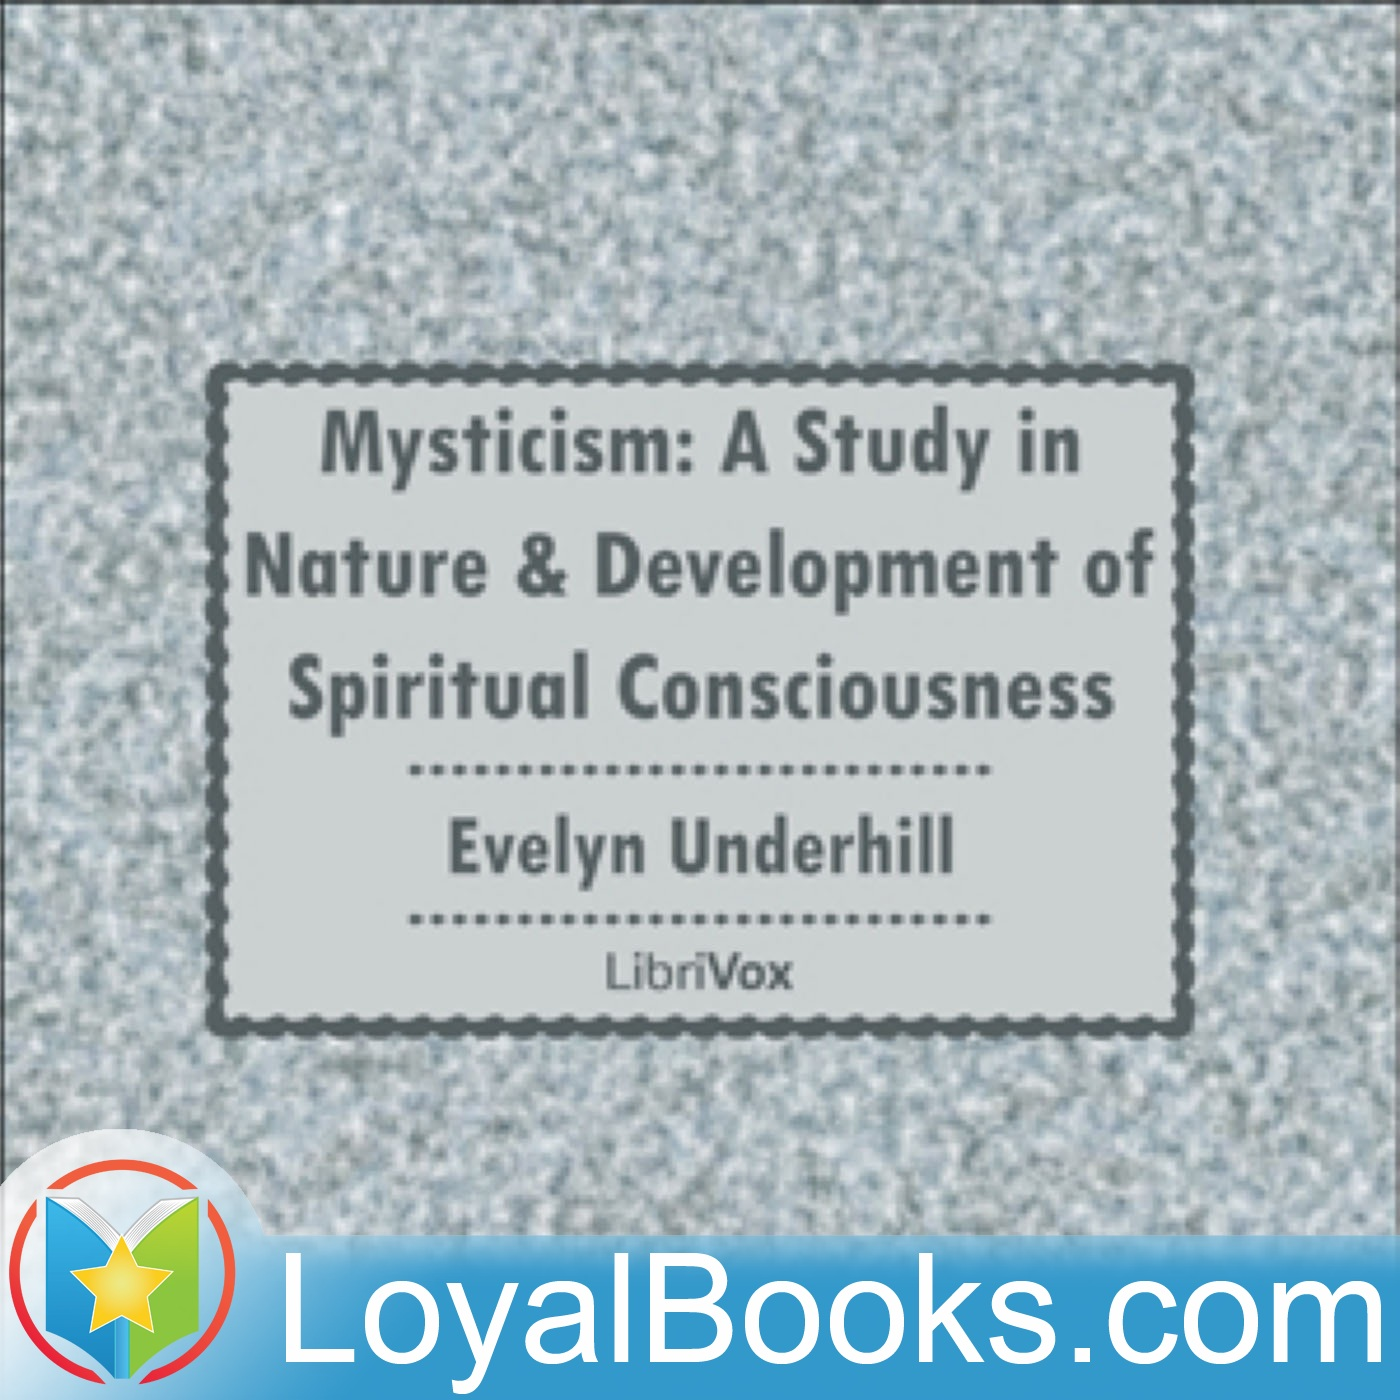 <![CDATA[Mysticism: A Study in Nature and Development of Spiritual Consciousness by Evelyn Underhill]]>